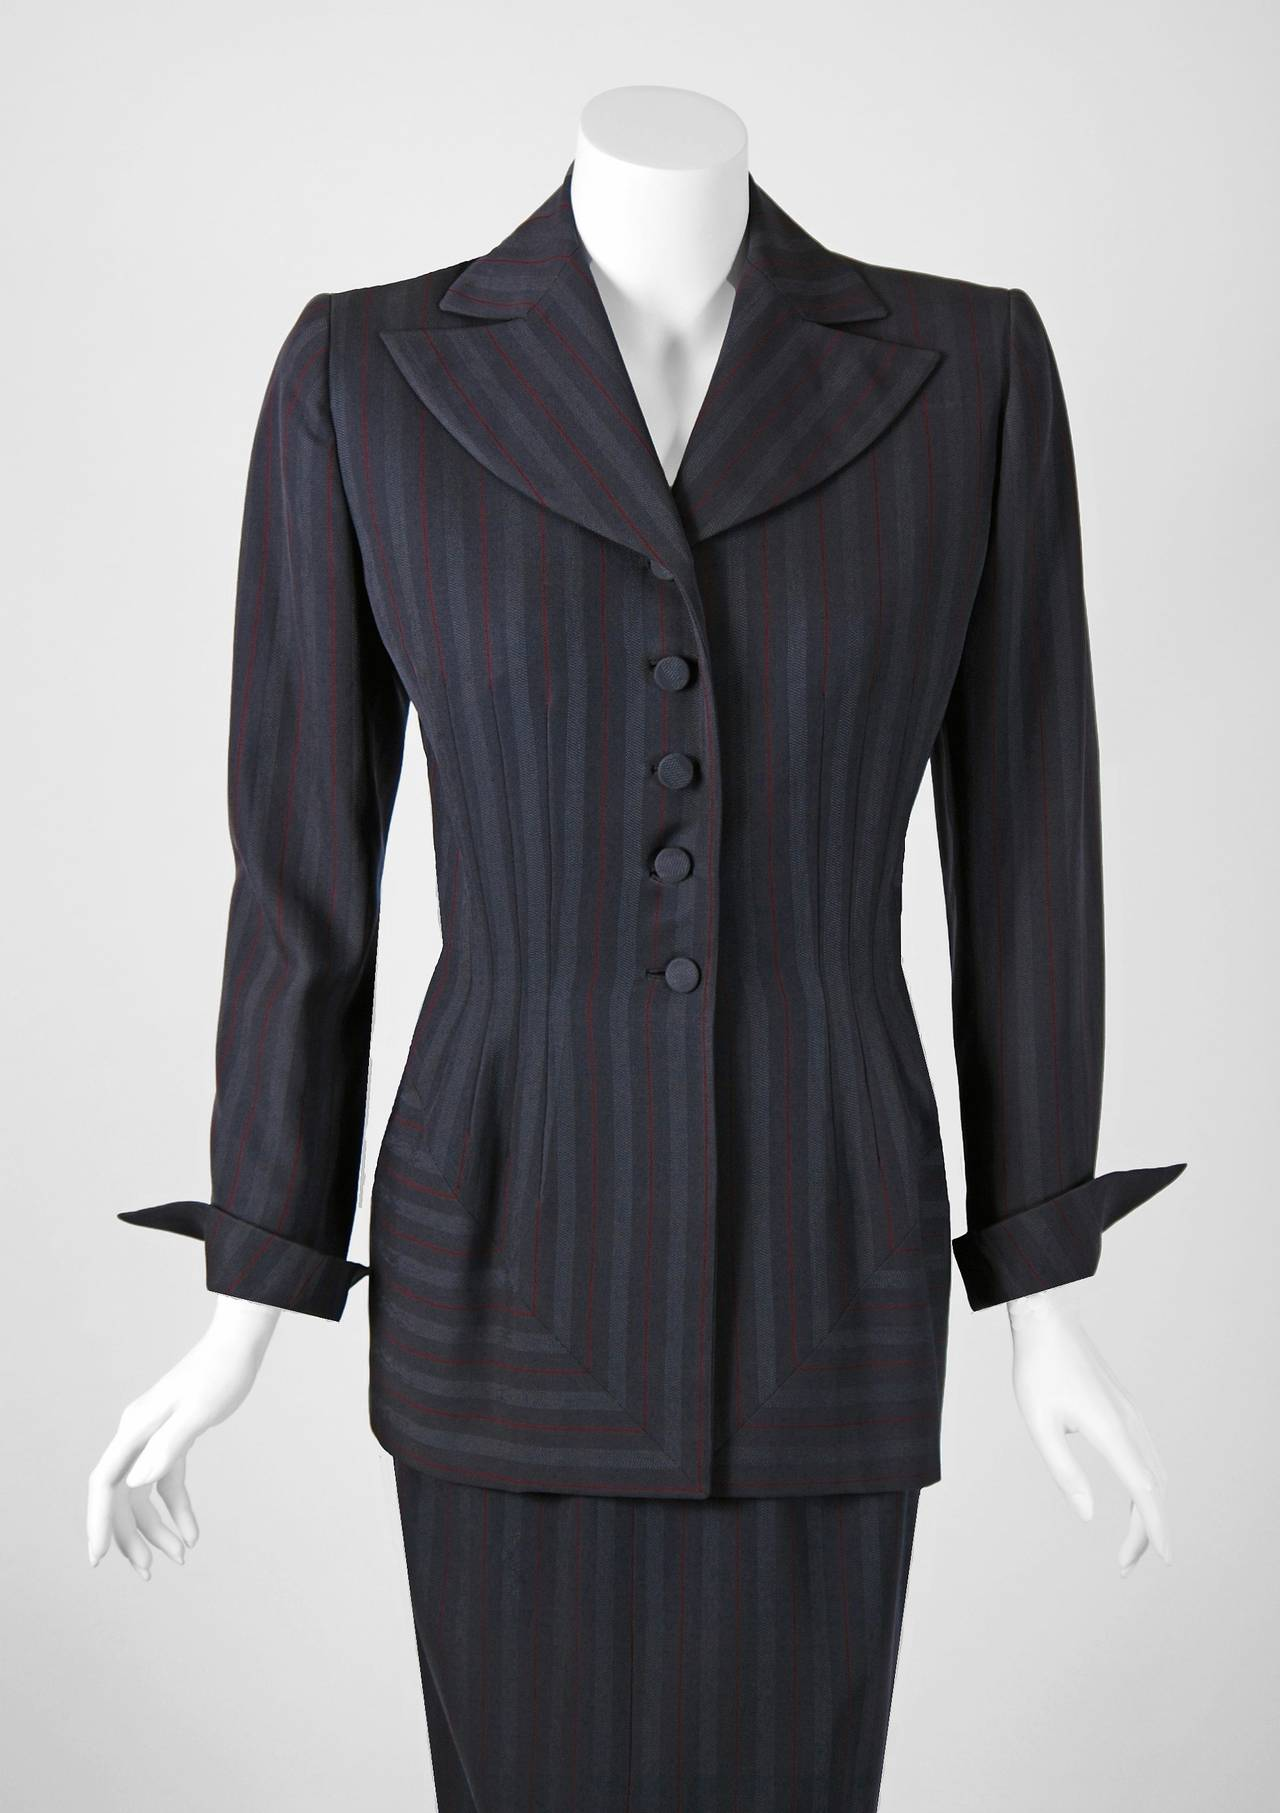 1940's Irene Grey Pinstripe Wool-Gabardine Deco Hourglass Jacket & Skirt Suit 2